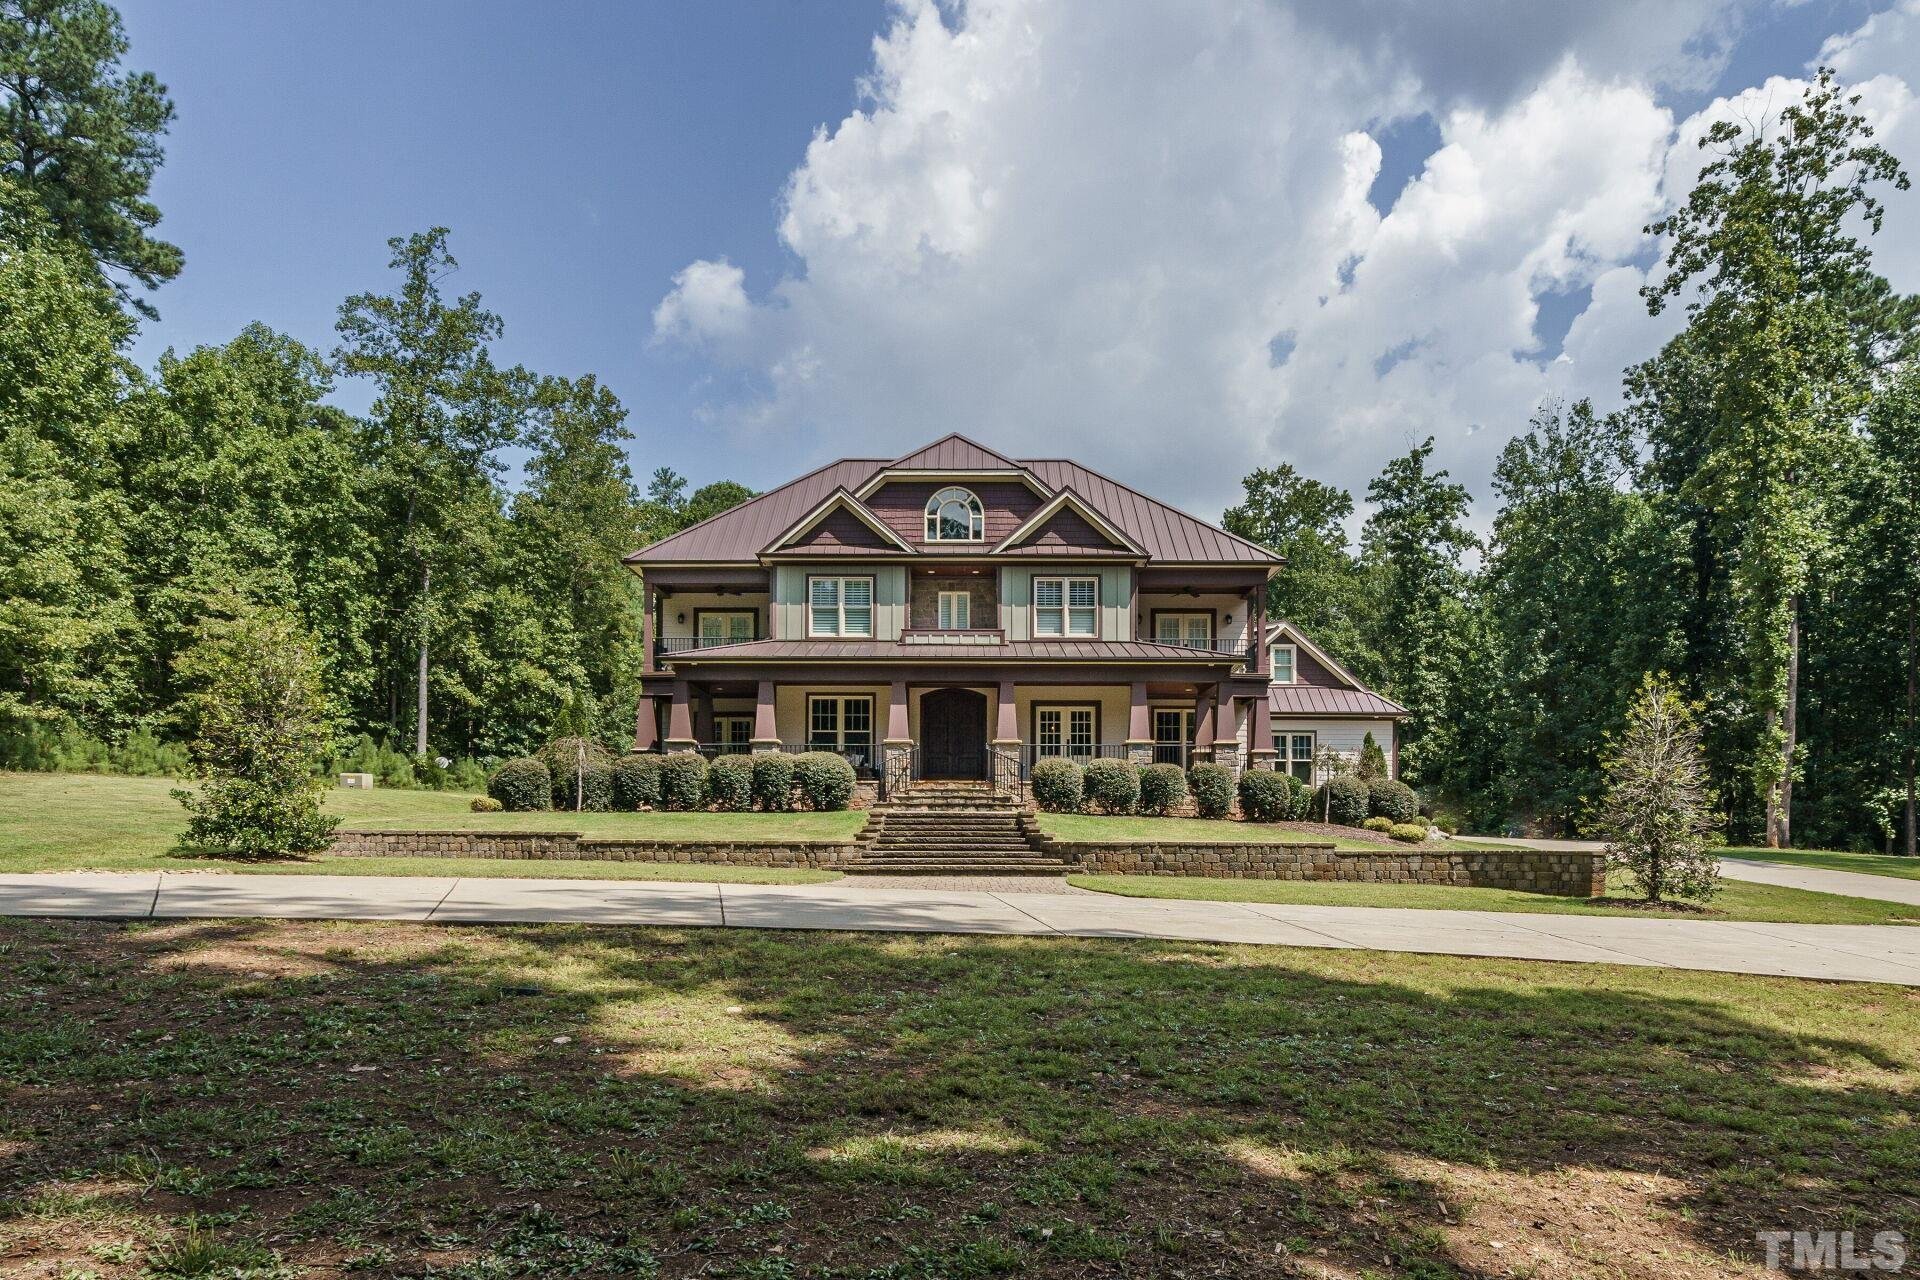 CUSTOM ESTATE HOME in Wake Forest on approx 5 acres. Every detail of this 5 bdrm/ 5+ bath home is custom. Reclaimed wood floor throughout. Sonos sound system inside/out, intercom & security system w/ cameras. Gas fireplace inside/wood fireplace outside. Gourmet kitchen w/ hibachi grill, custom cabinets & granite counters, 3rd floor gym w/ rubber matted flooring, spa master bath w/ heated floors & body spray, attached inlaw apartment w/ separate outside entrance. Conditioned playhouse. Movie Room and more!